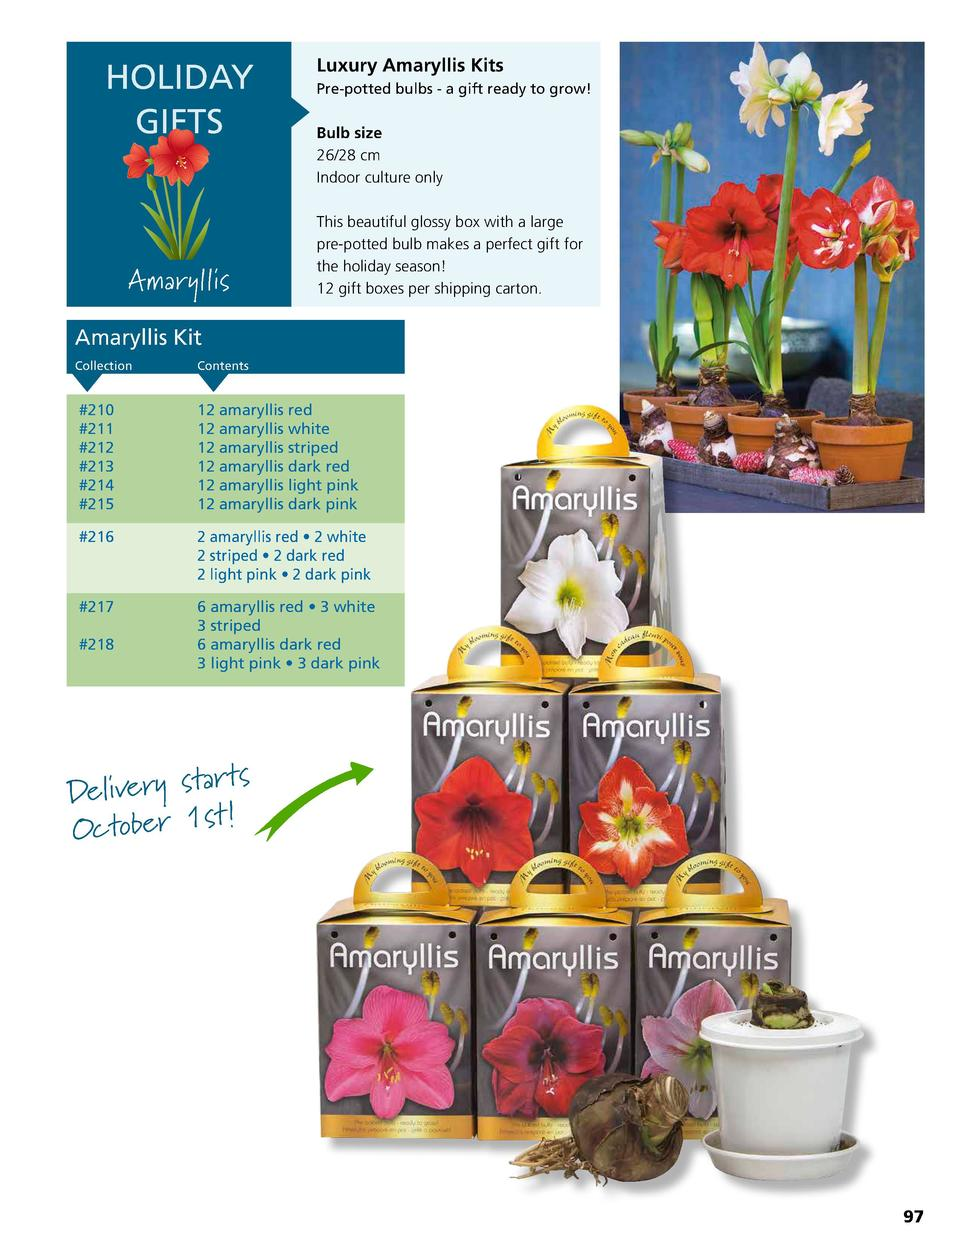 HOLIDAY GIFTS  Amaryllis  Luxury Amaryllis Kits Pre-potted bulbs - a gift ready to grow   Bulb size 26 28 cm Indoor cultur...